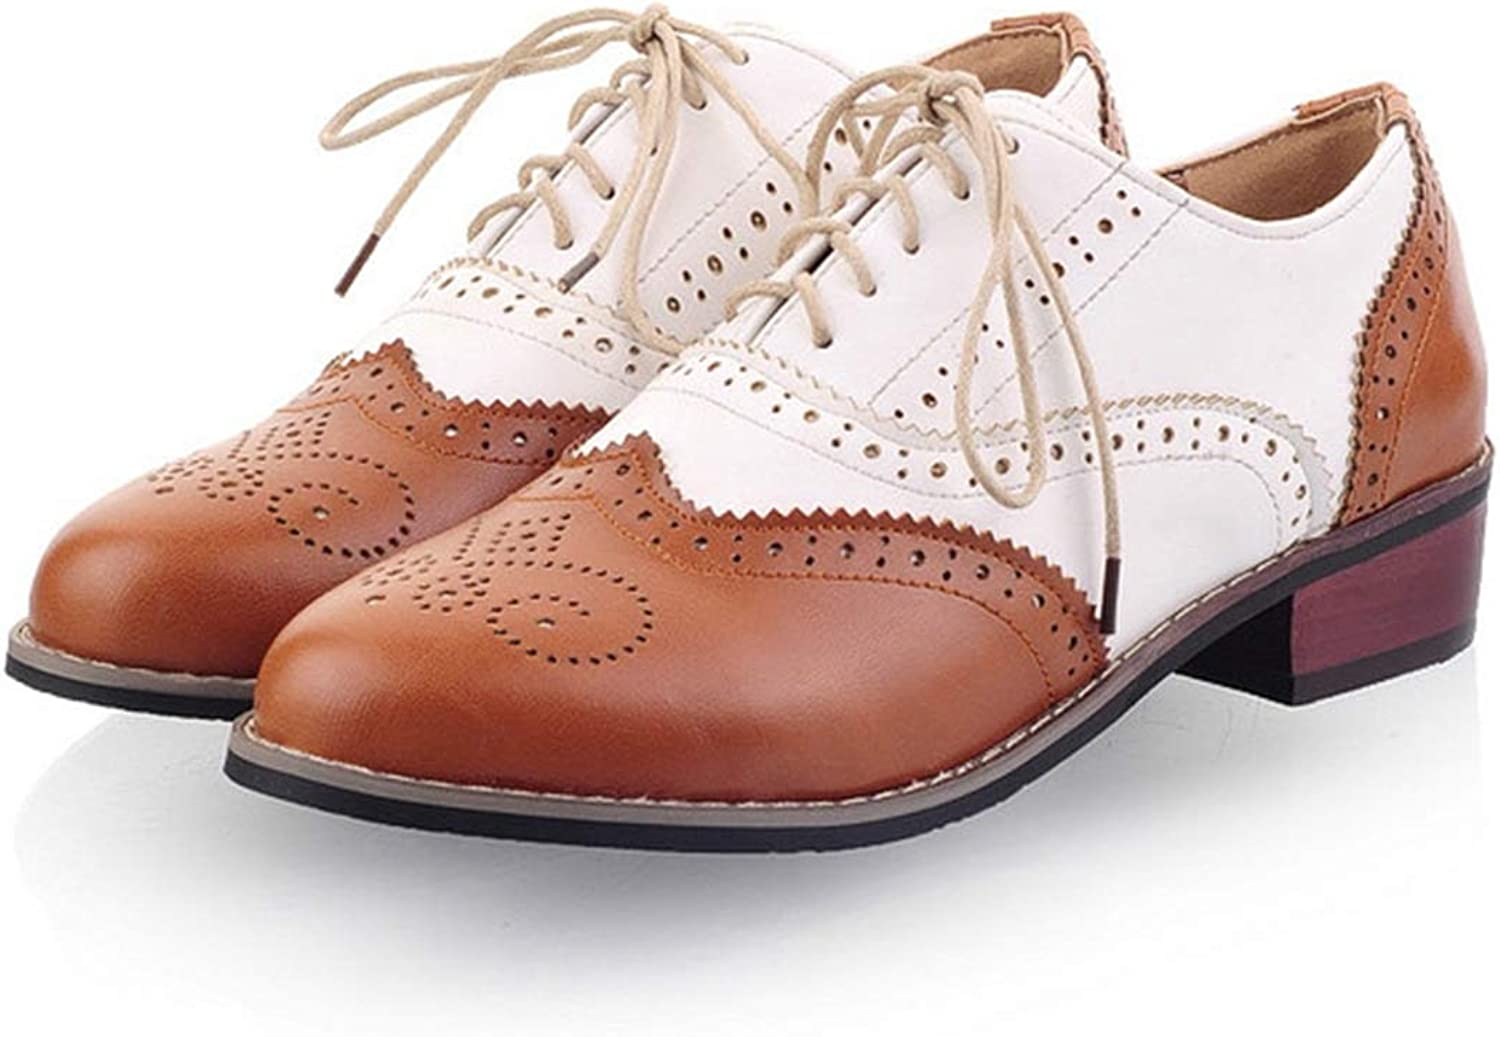 New 2019 Womens Flats Shoes Mixed Color Leather Oxfords Vintage Casual Shoes Spring Autumn Women Oxford Shoe Black